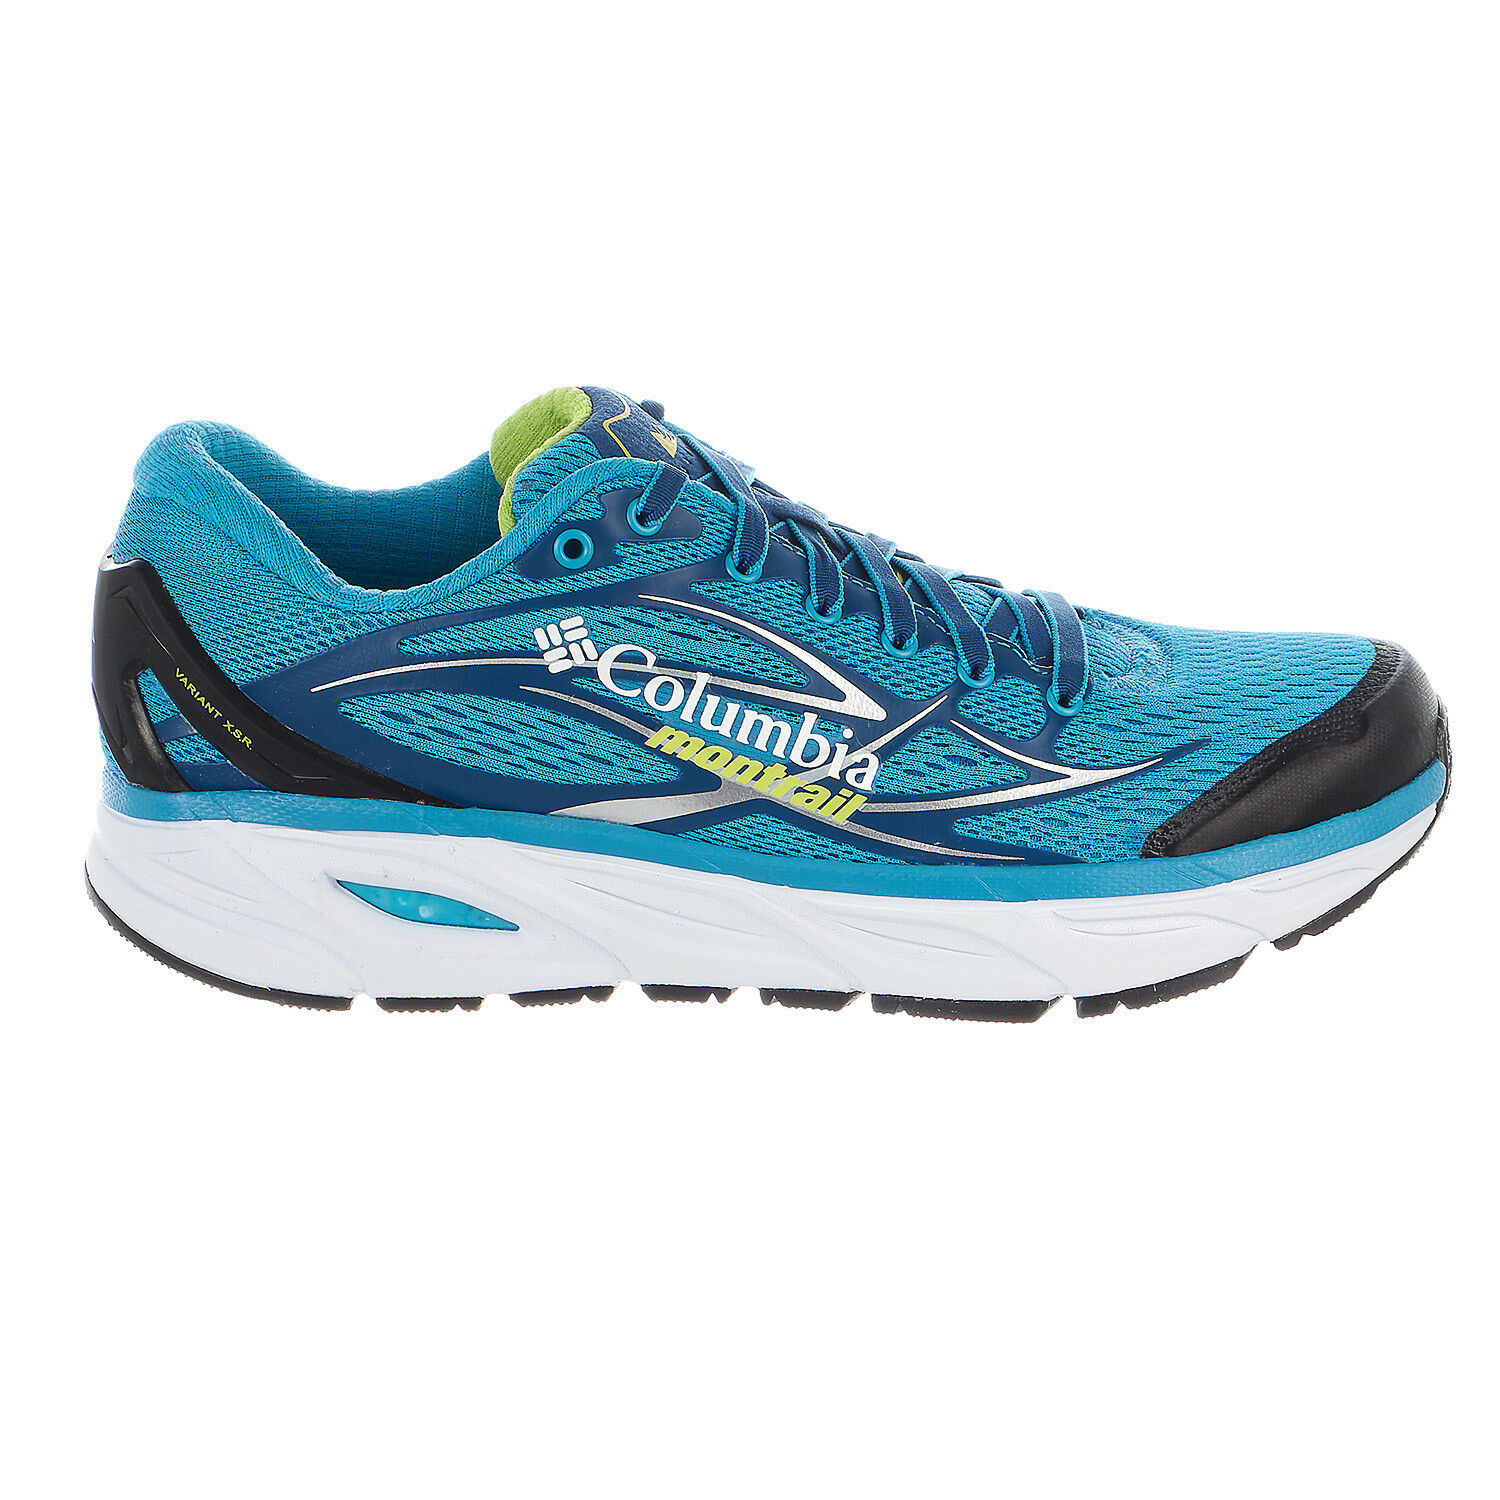 Columbia Montrail Men's Variant X.S.R. Trail Running shoes -  Mens